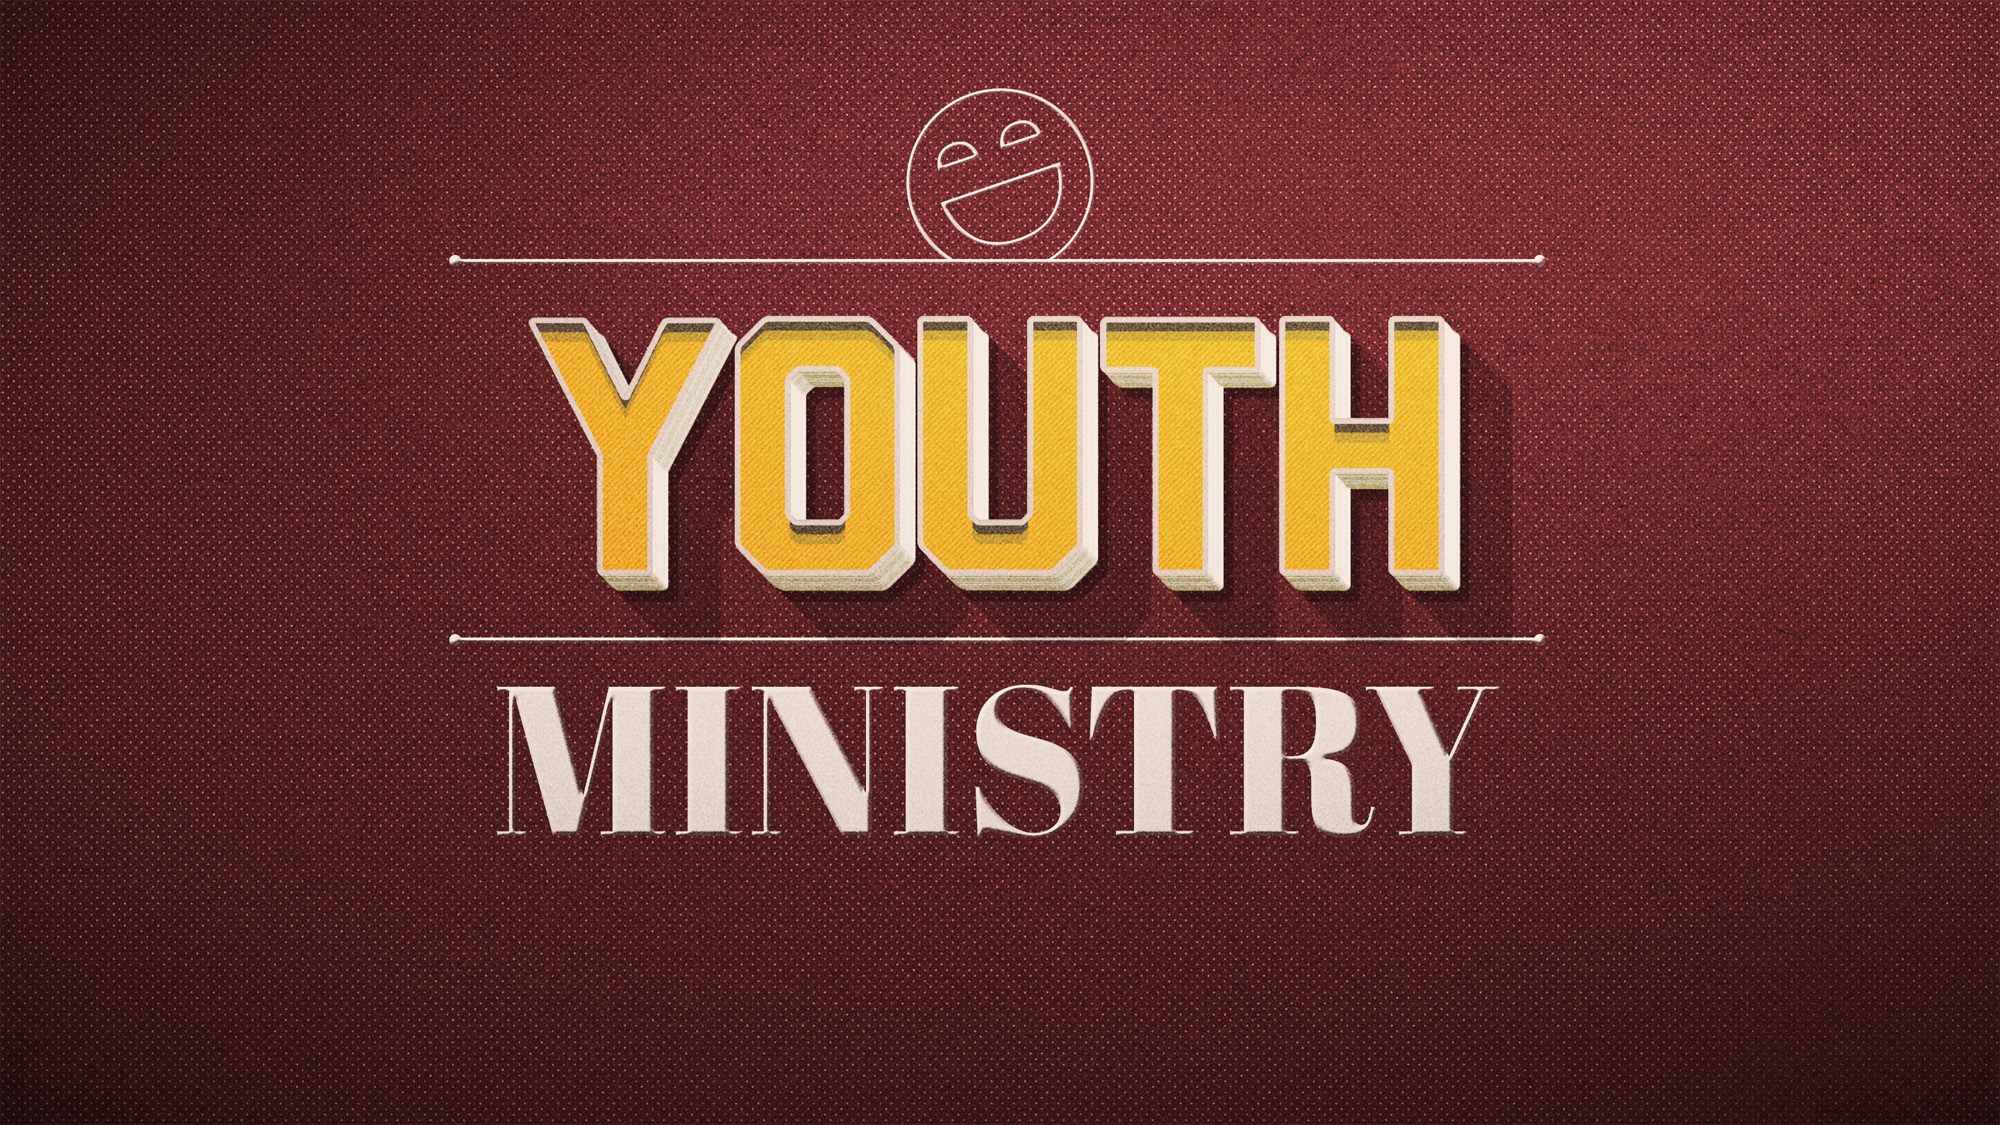 ministry_set_youth_ministry-title-2-Wide 16x9.jpg